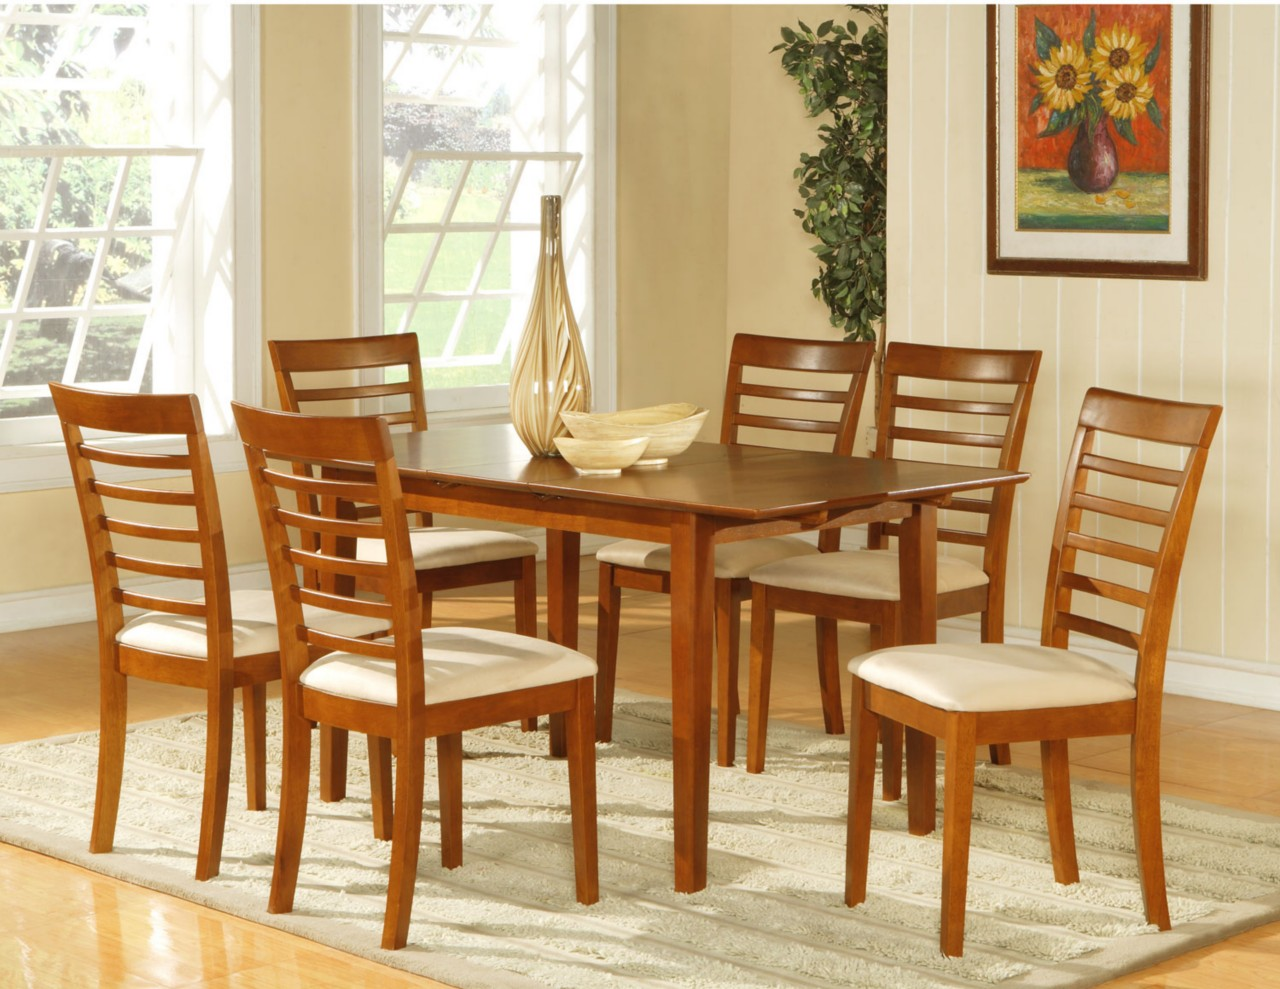 dinette sets dining room tables dinettes bar stools dinette tables